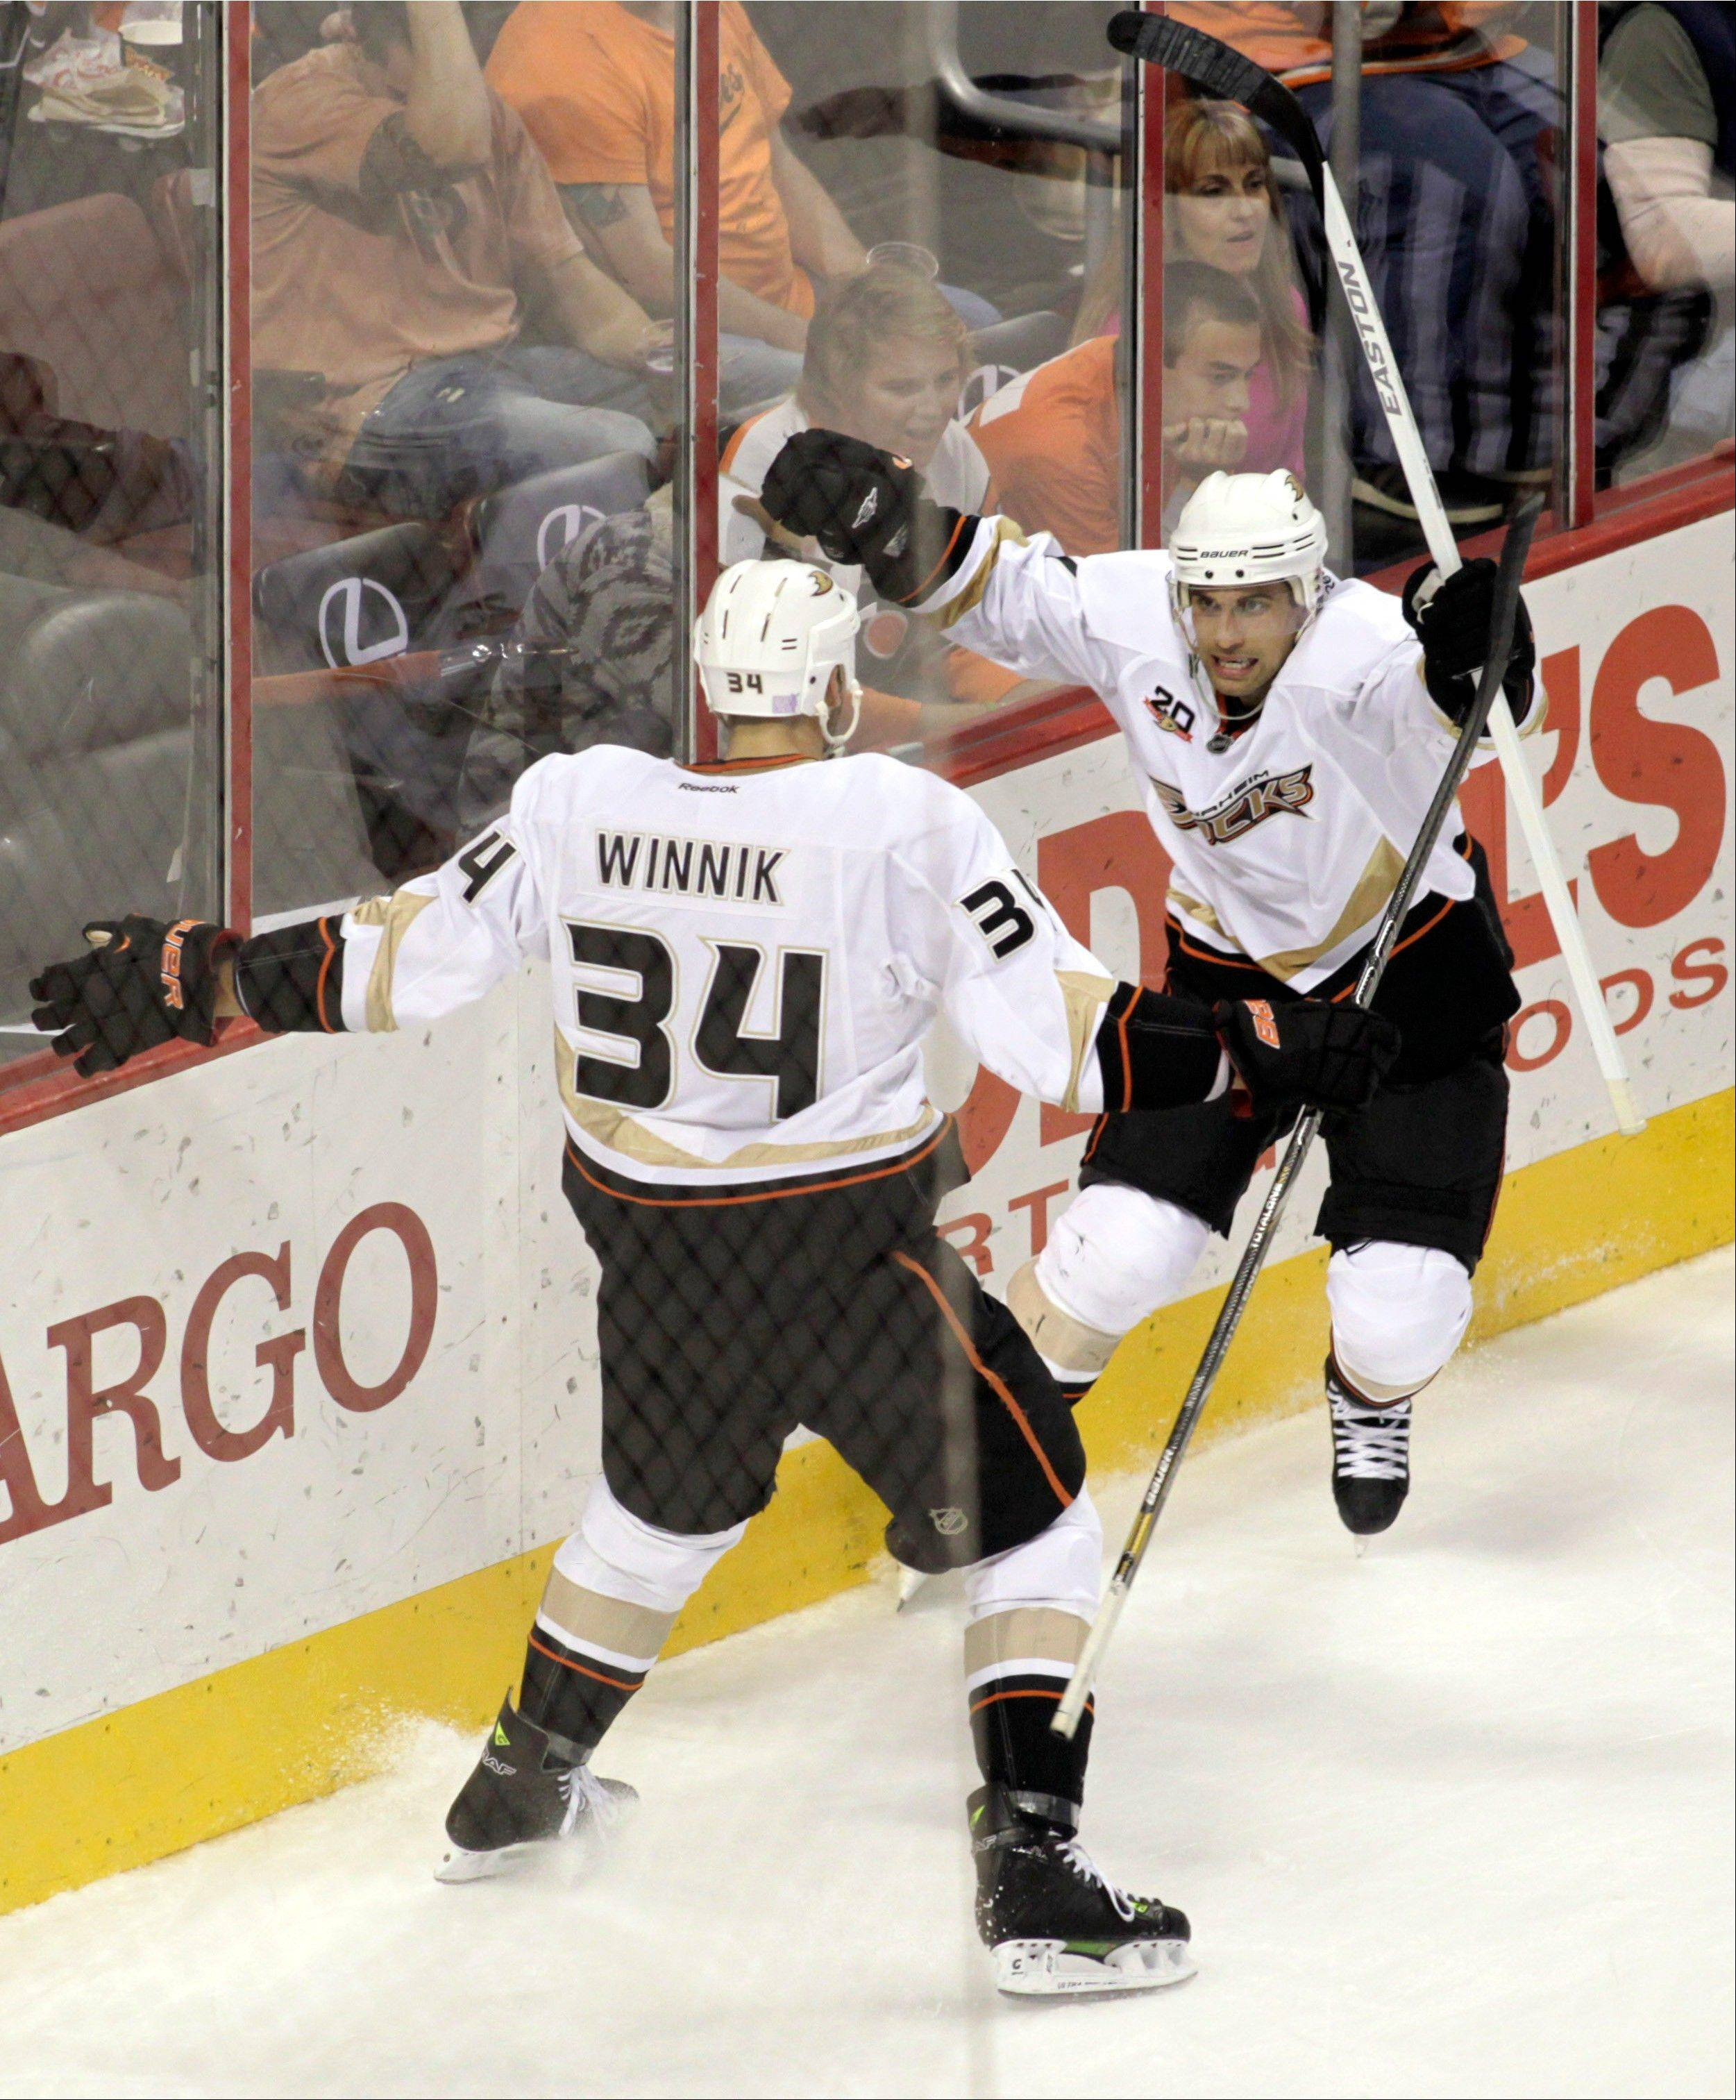 Anaheim Ducks� Andrew Cogliano, right celebrates with Daniel Winnik (34) after scoring against the Philadelphia Flyers in the second period of an NHL hockey game Tuesday in Philadelphia.